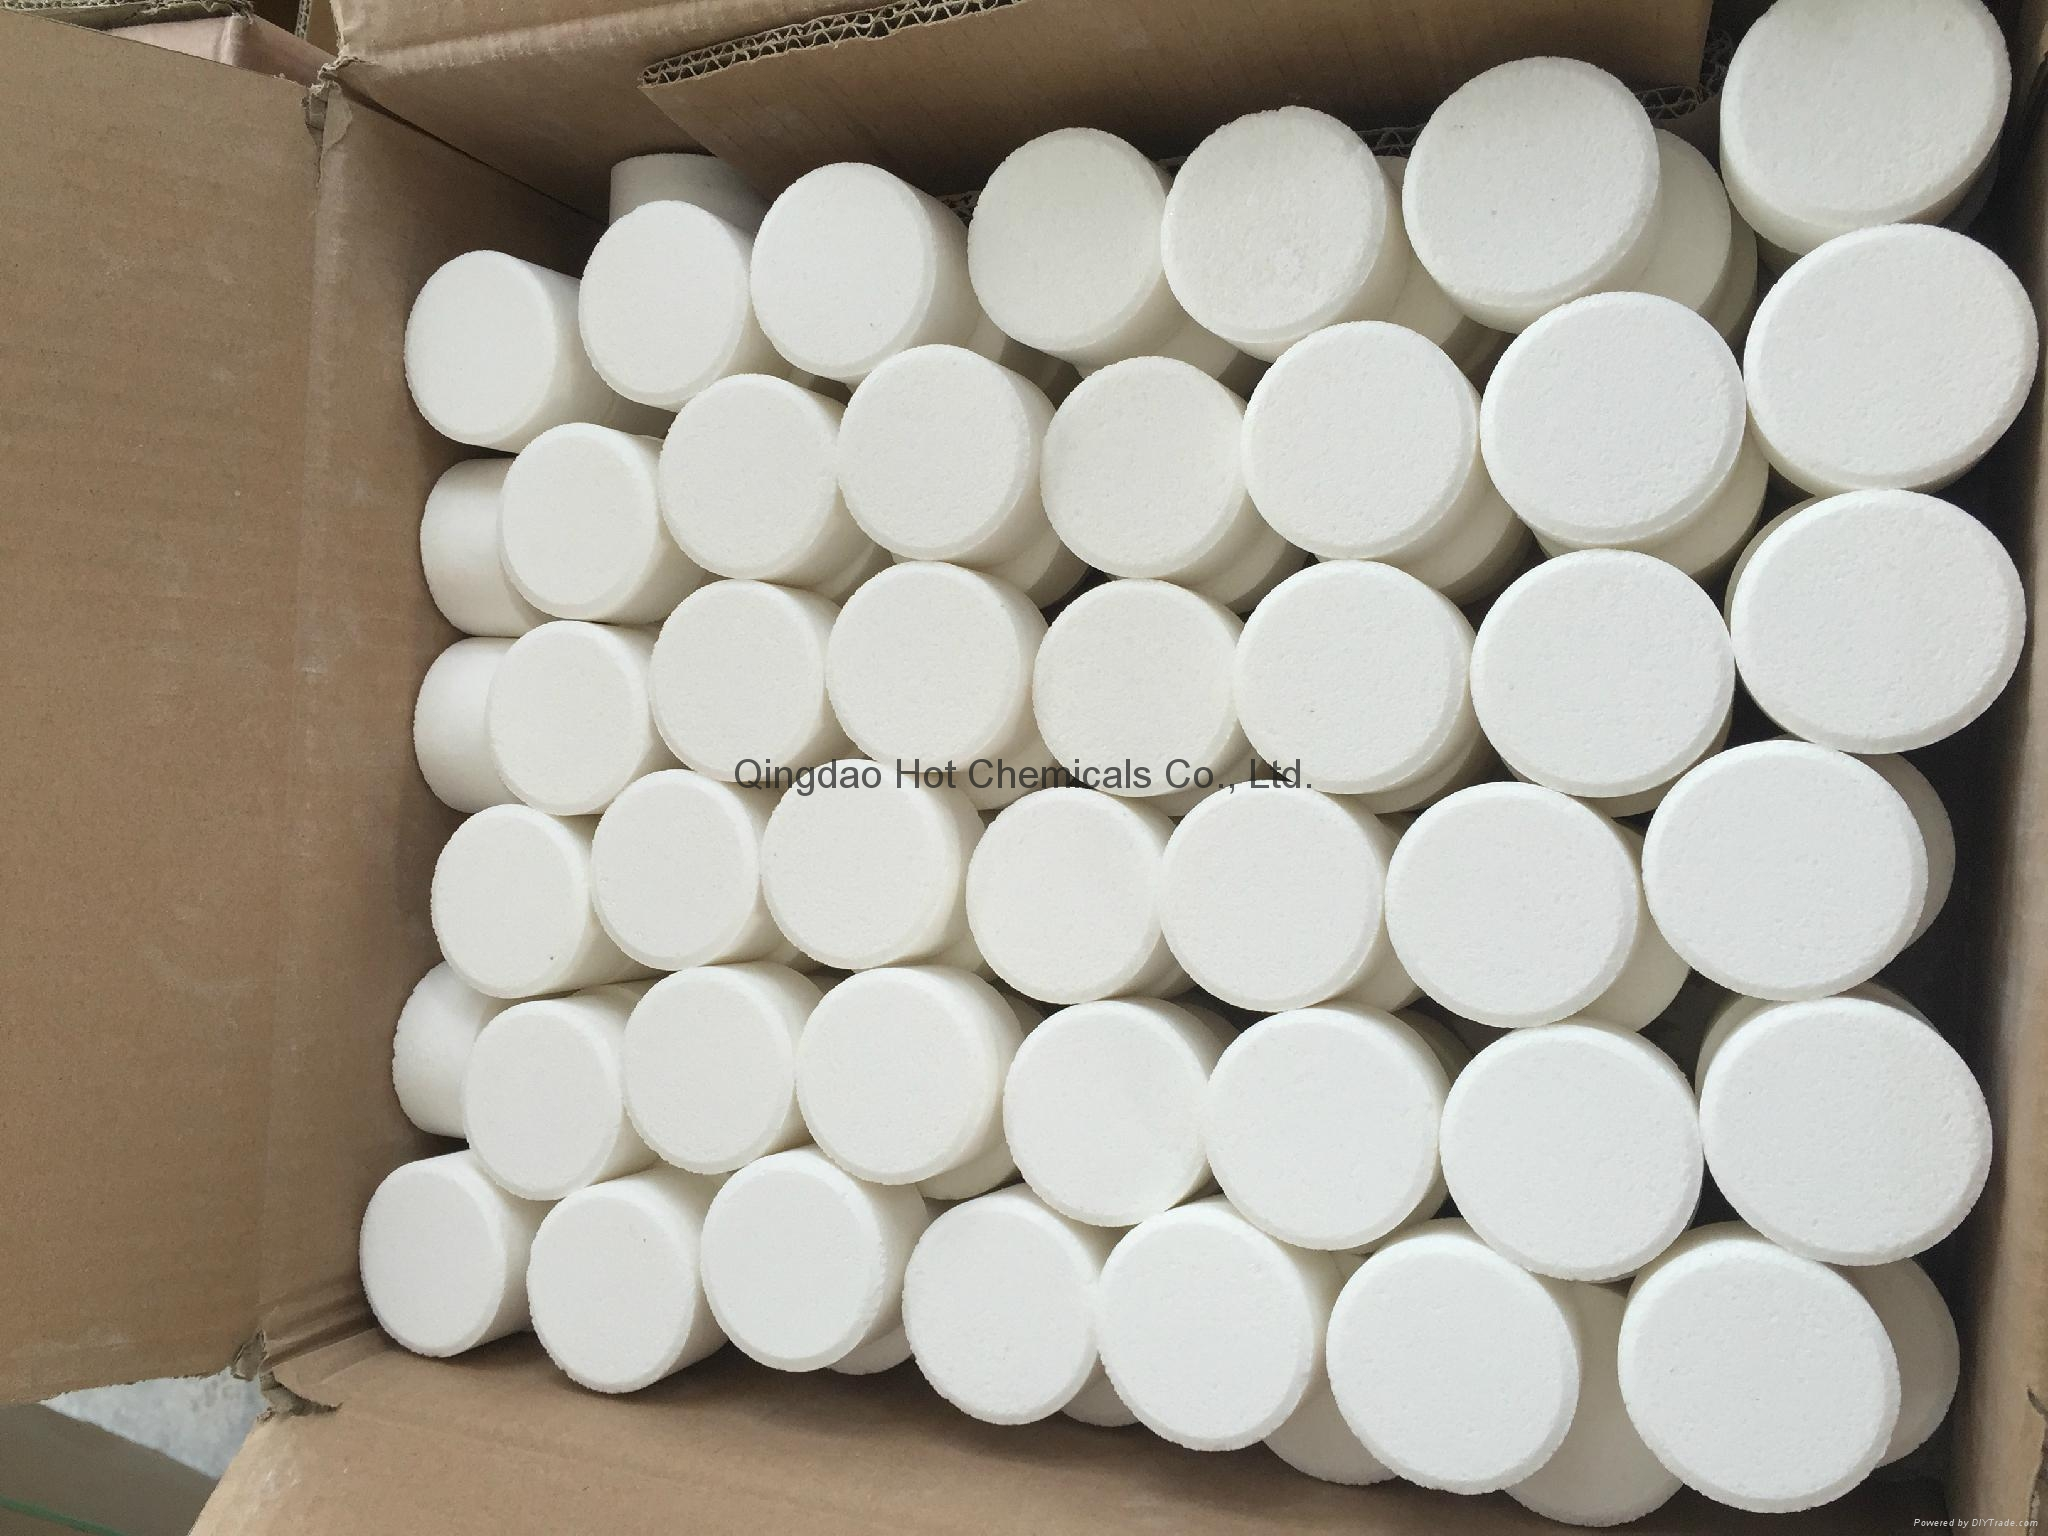 Desiccant Dryer tablets for the dehydration of Natural Gas  4